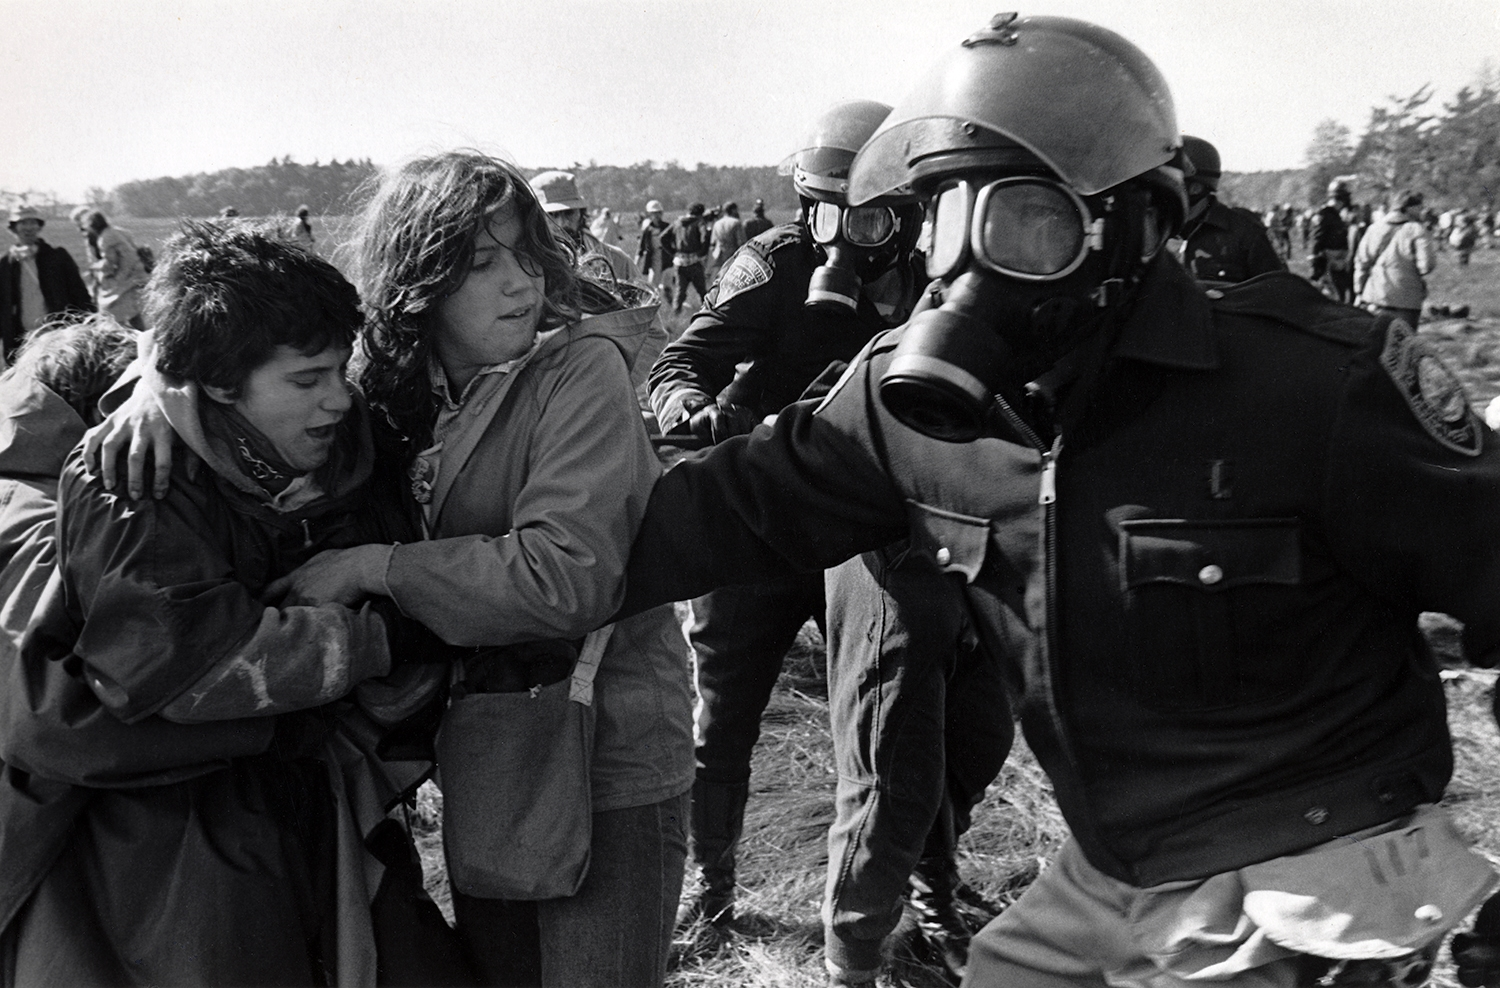 Rounding up protesters  Seabrook, NH. 1979